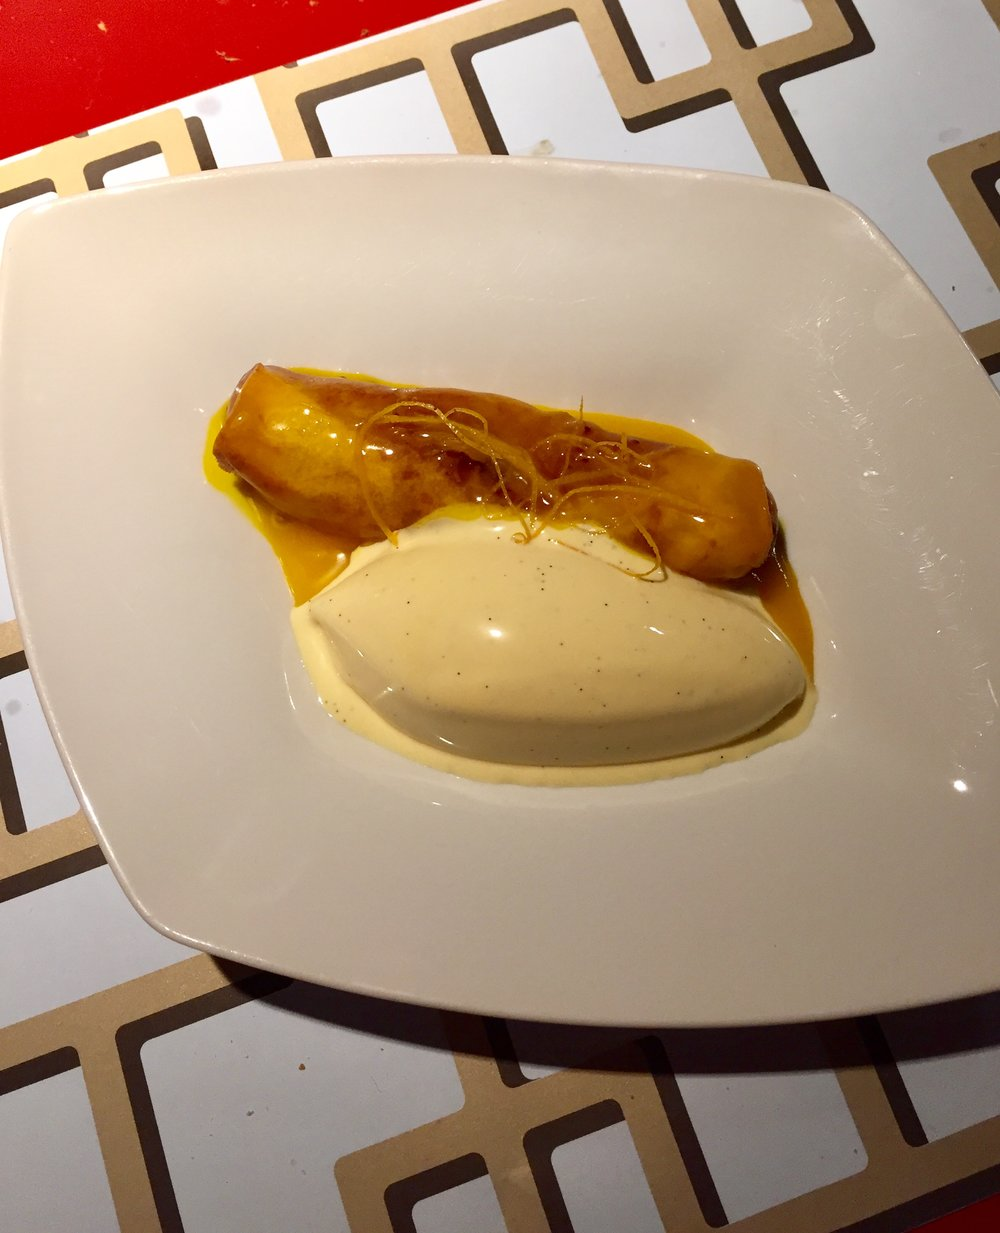 Plantain in pastry with vanilla ice cream and orange sauce (divine!)